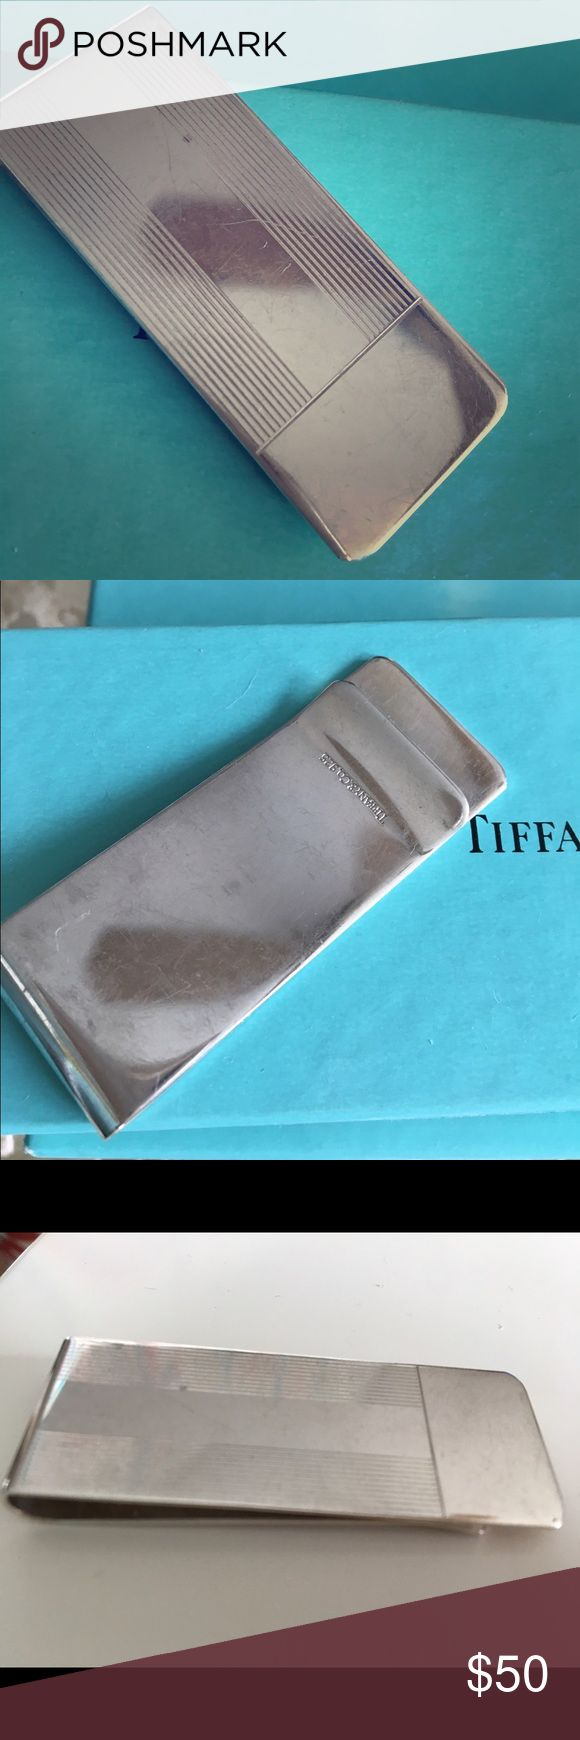 Tiffany & Co. Sterling Silver Money Clip. Tiffany & Co. Sterling Silver Money Clip. Authentic, never used SAMPLE. VERY WORN, lots of scratches and tarnished spots. PRICE REFLECTS!!!! Sold out on Tiffany's website – this sells for $200 new. It's engravable down the front and across the bottom to camouflage the scratches. .925. Tiffany & Co. Accessories Key & Card Holders